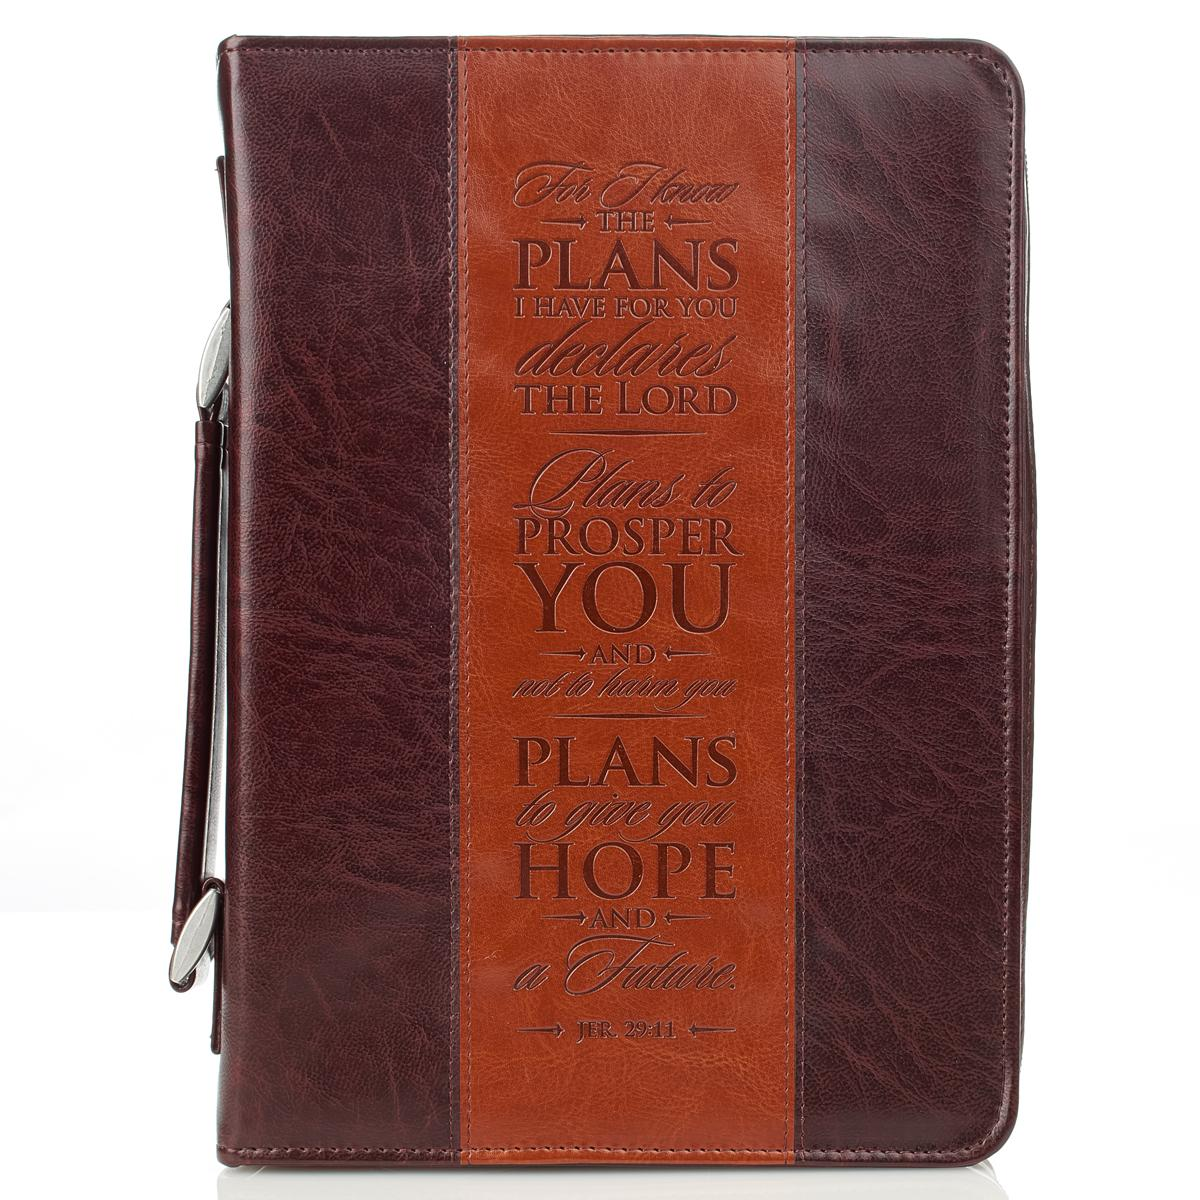 I Know the Plans Large Bible Case BBL593, bible cover, bible case, carry case, bible protector, minister gift, clergy gift